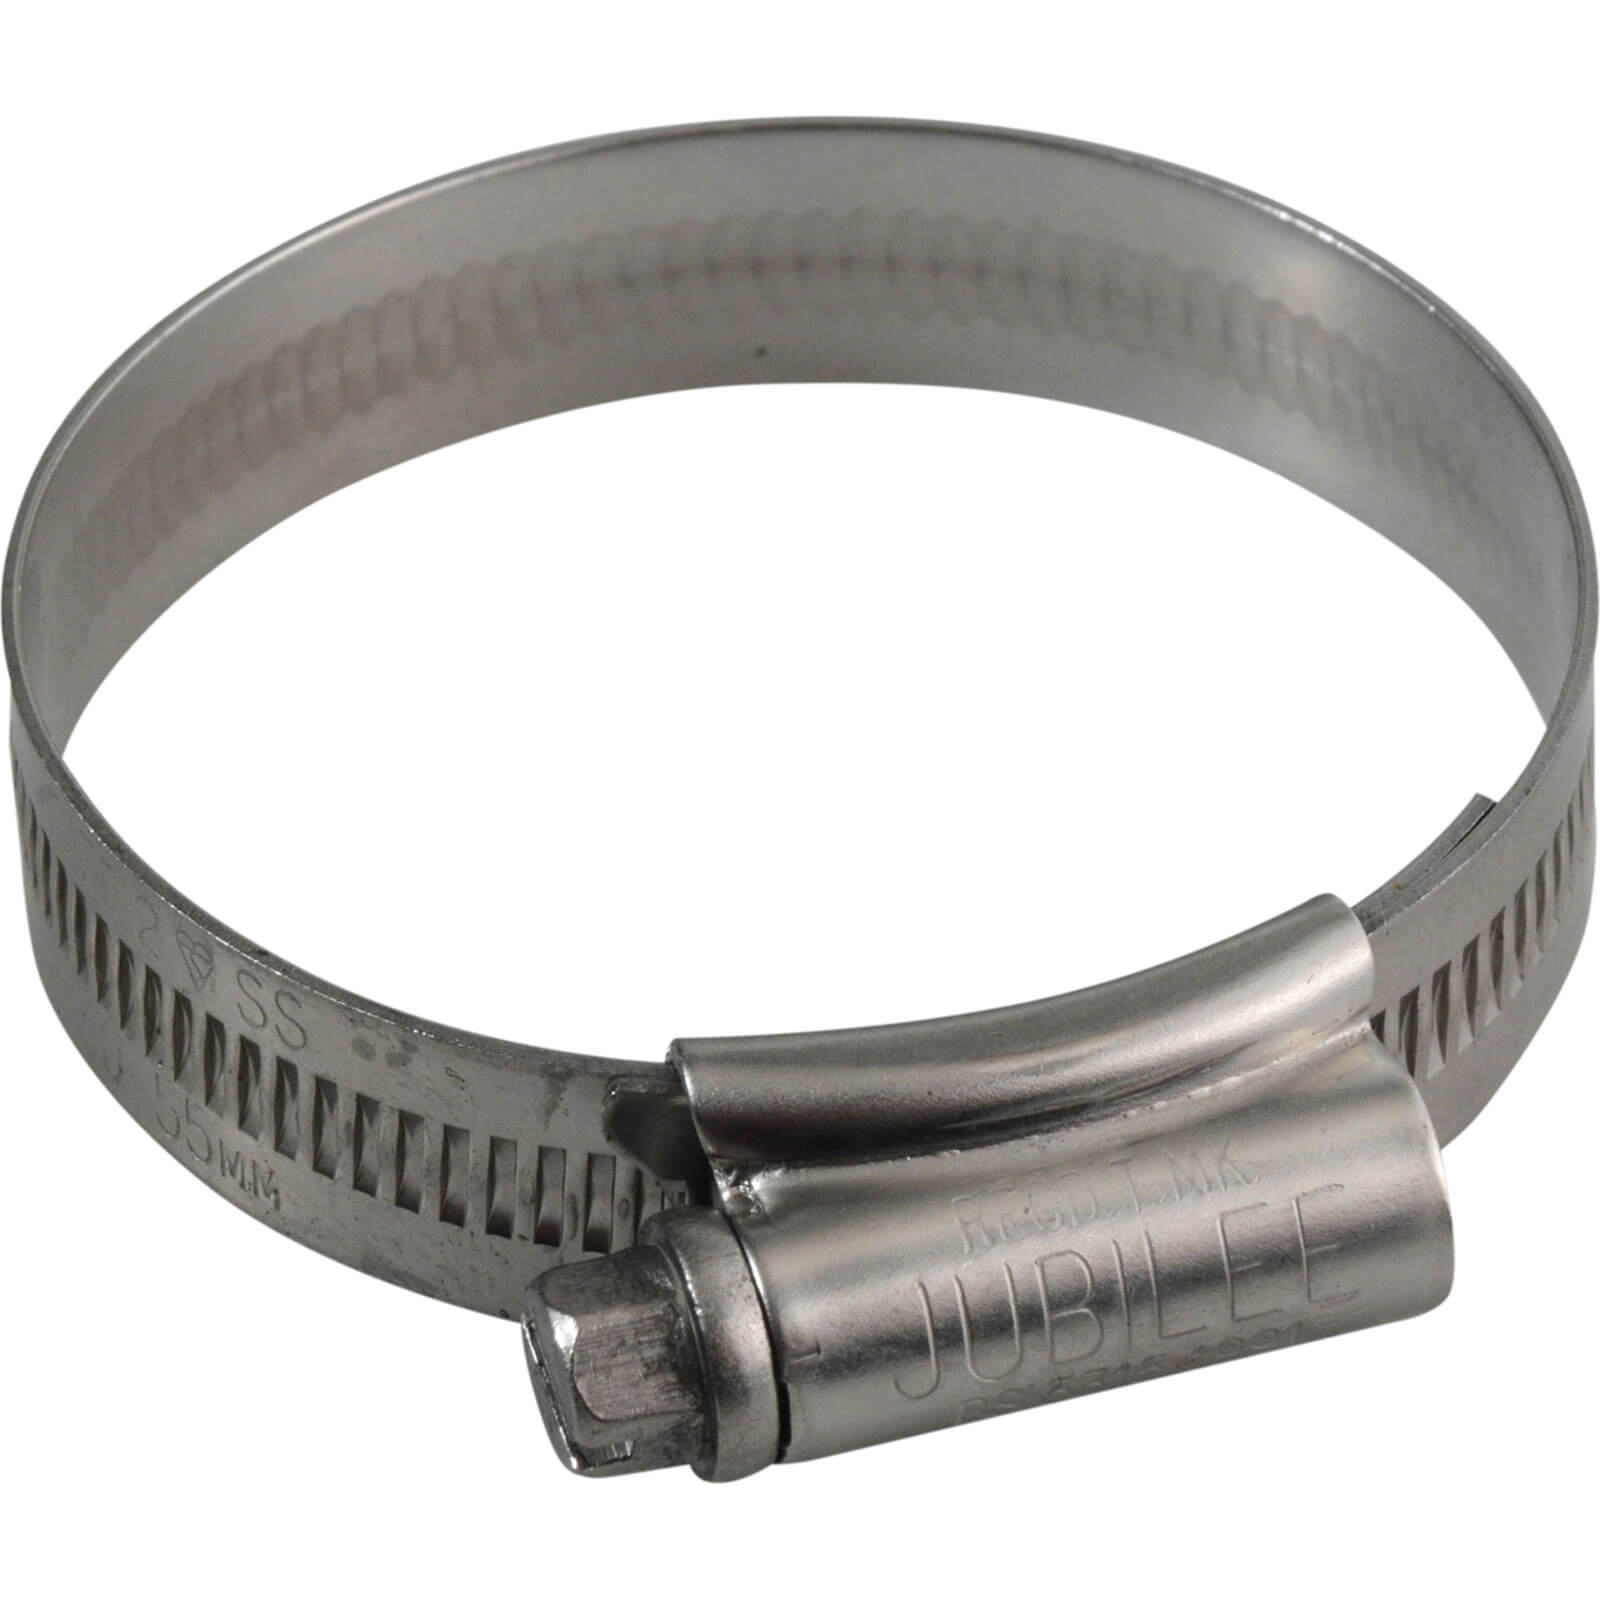 Image of Jubilee Stainless Steel Hose Clip 40mm - 55mm Pack of 1